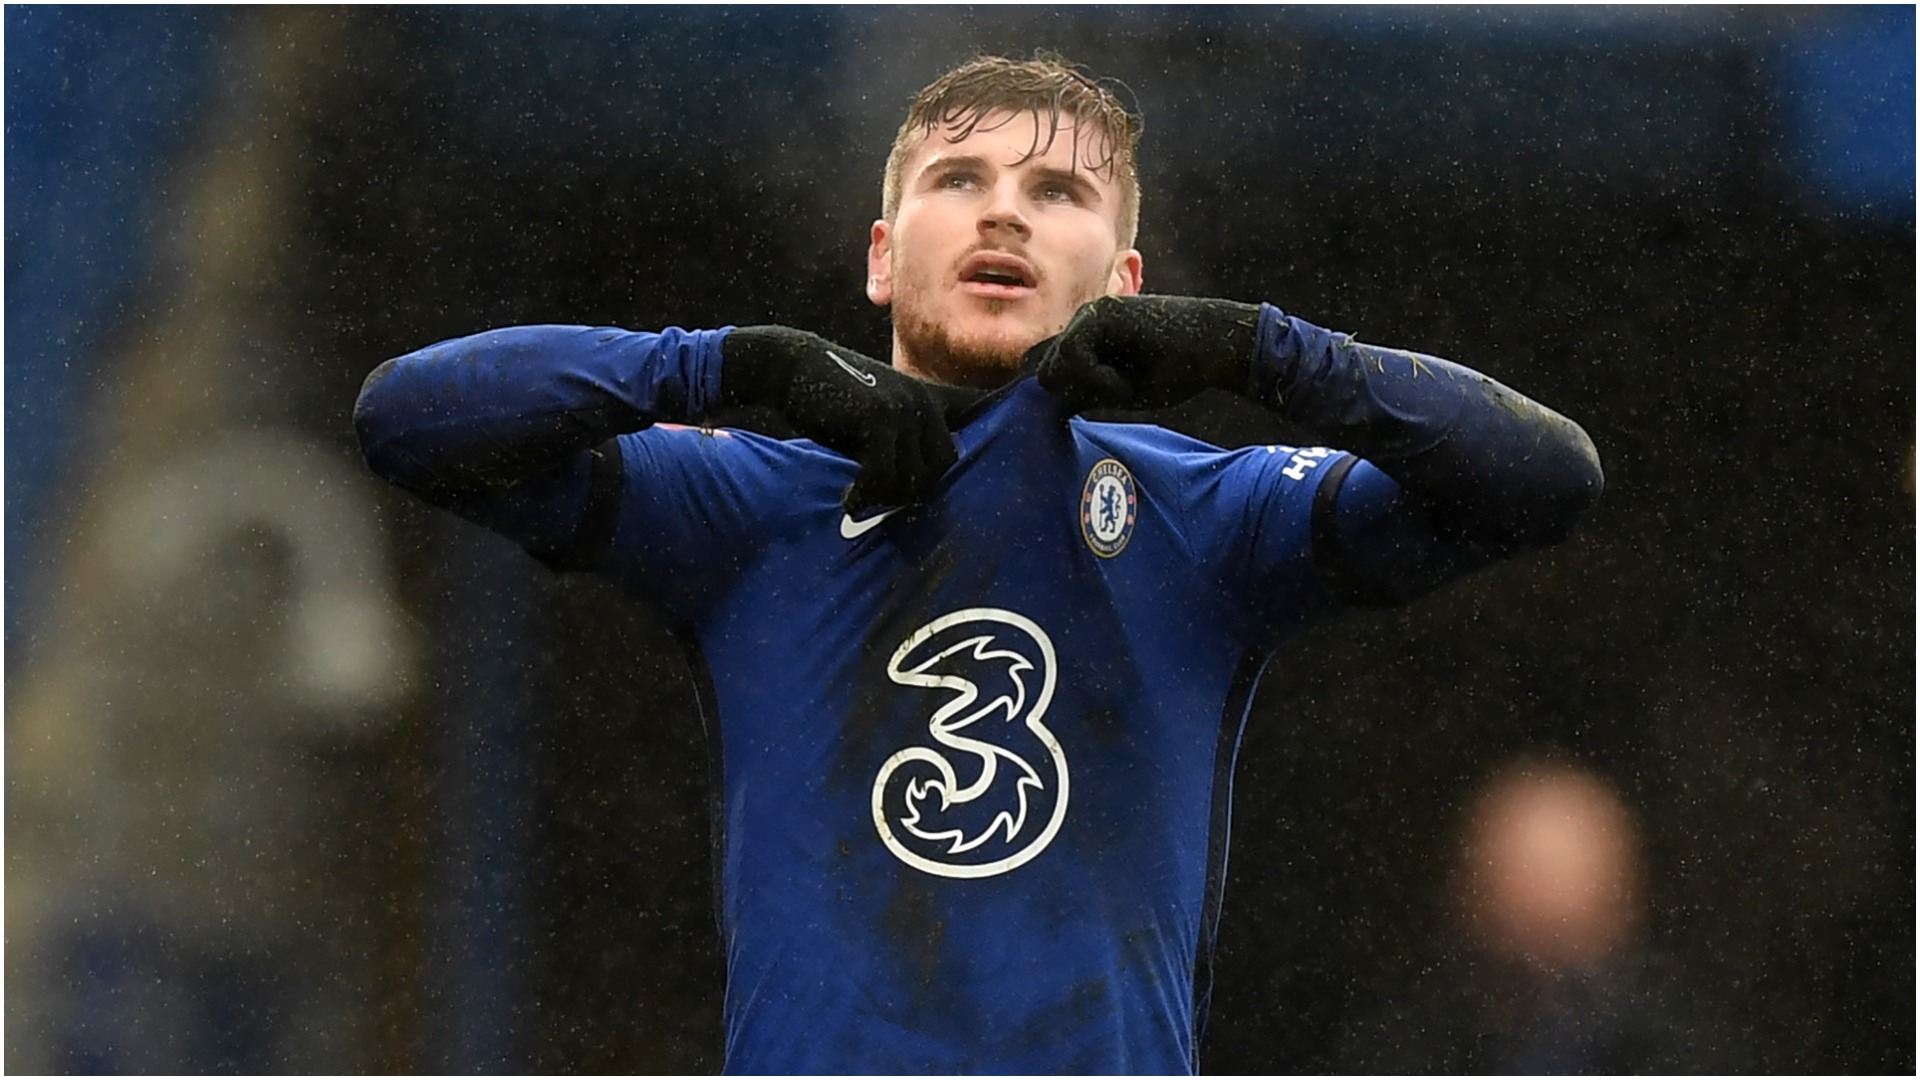 Lampard defends Kepa and Werner after FA Cup mistakes